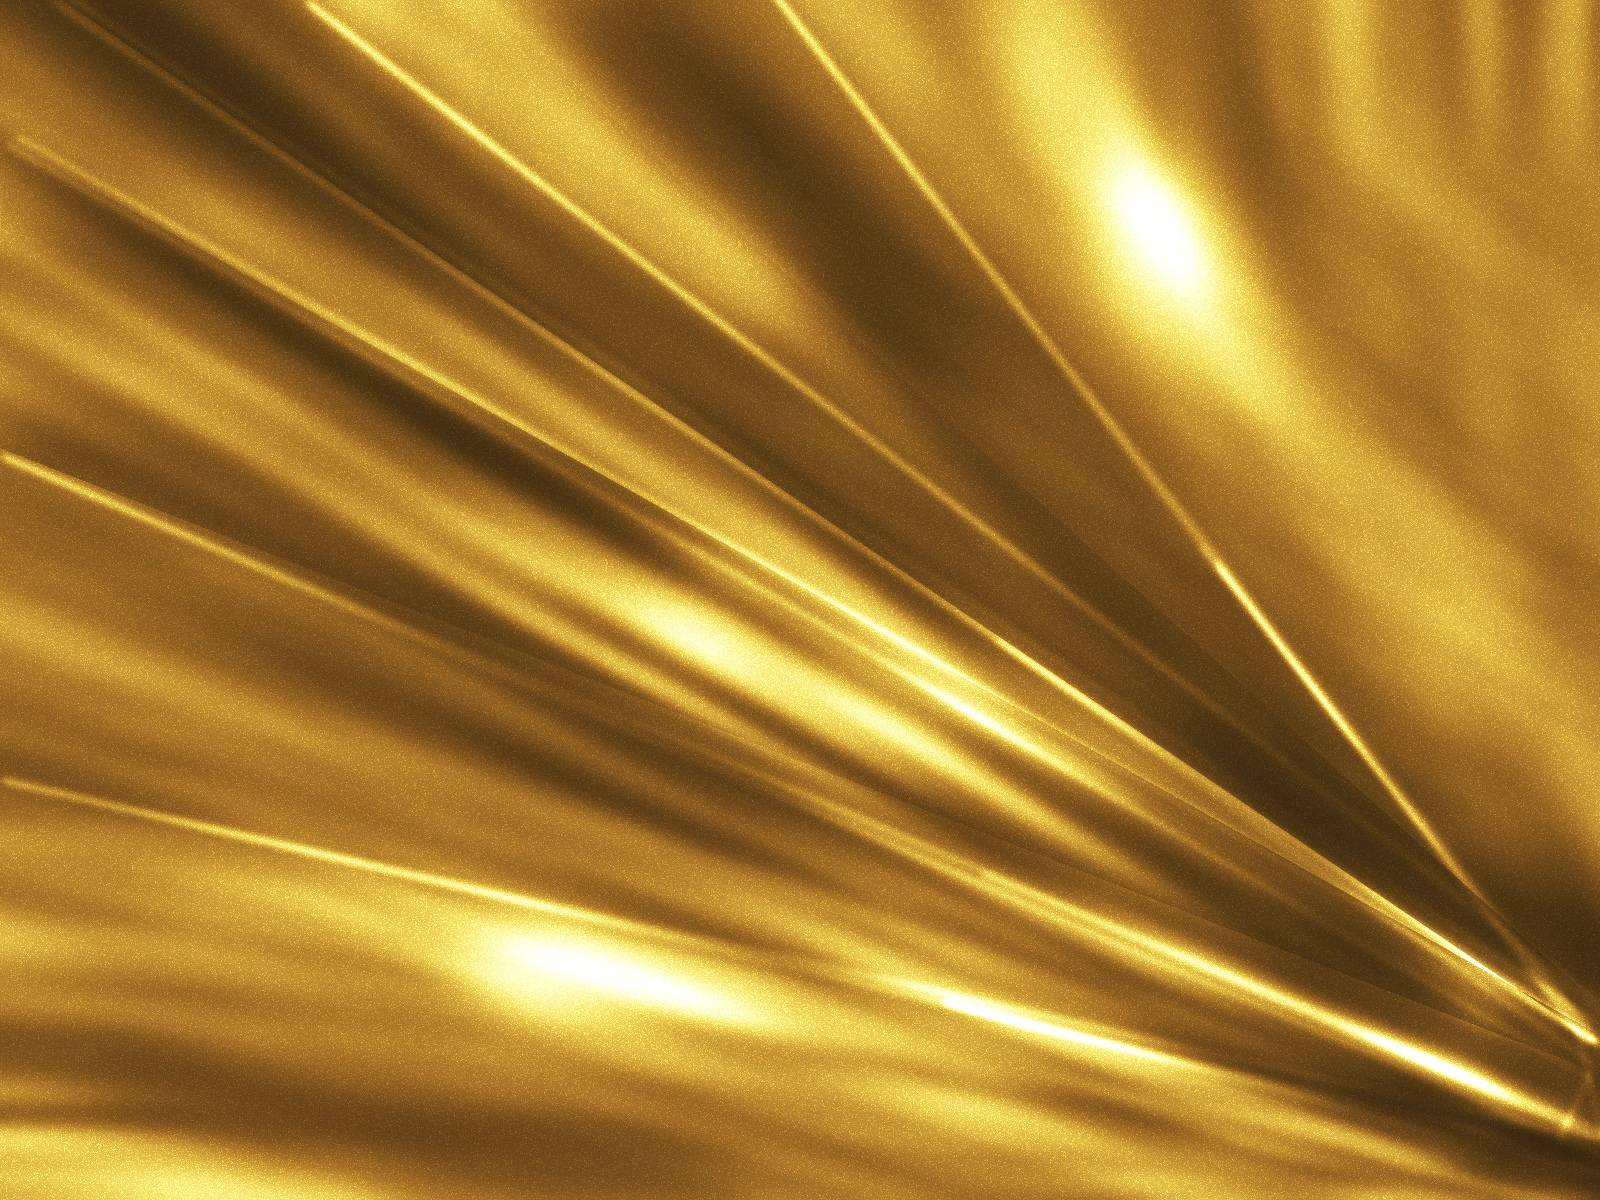 Hd Wallpapers For Android Free Download Gold Wallpapers Wallpaper Cave